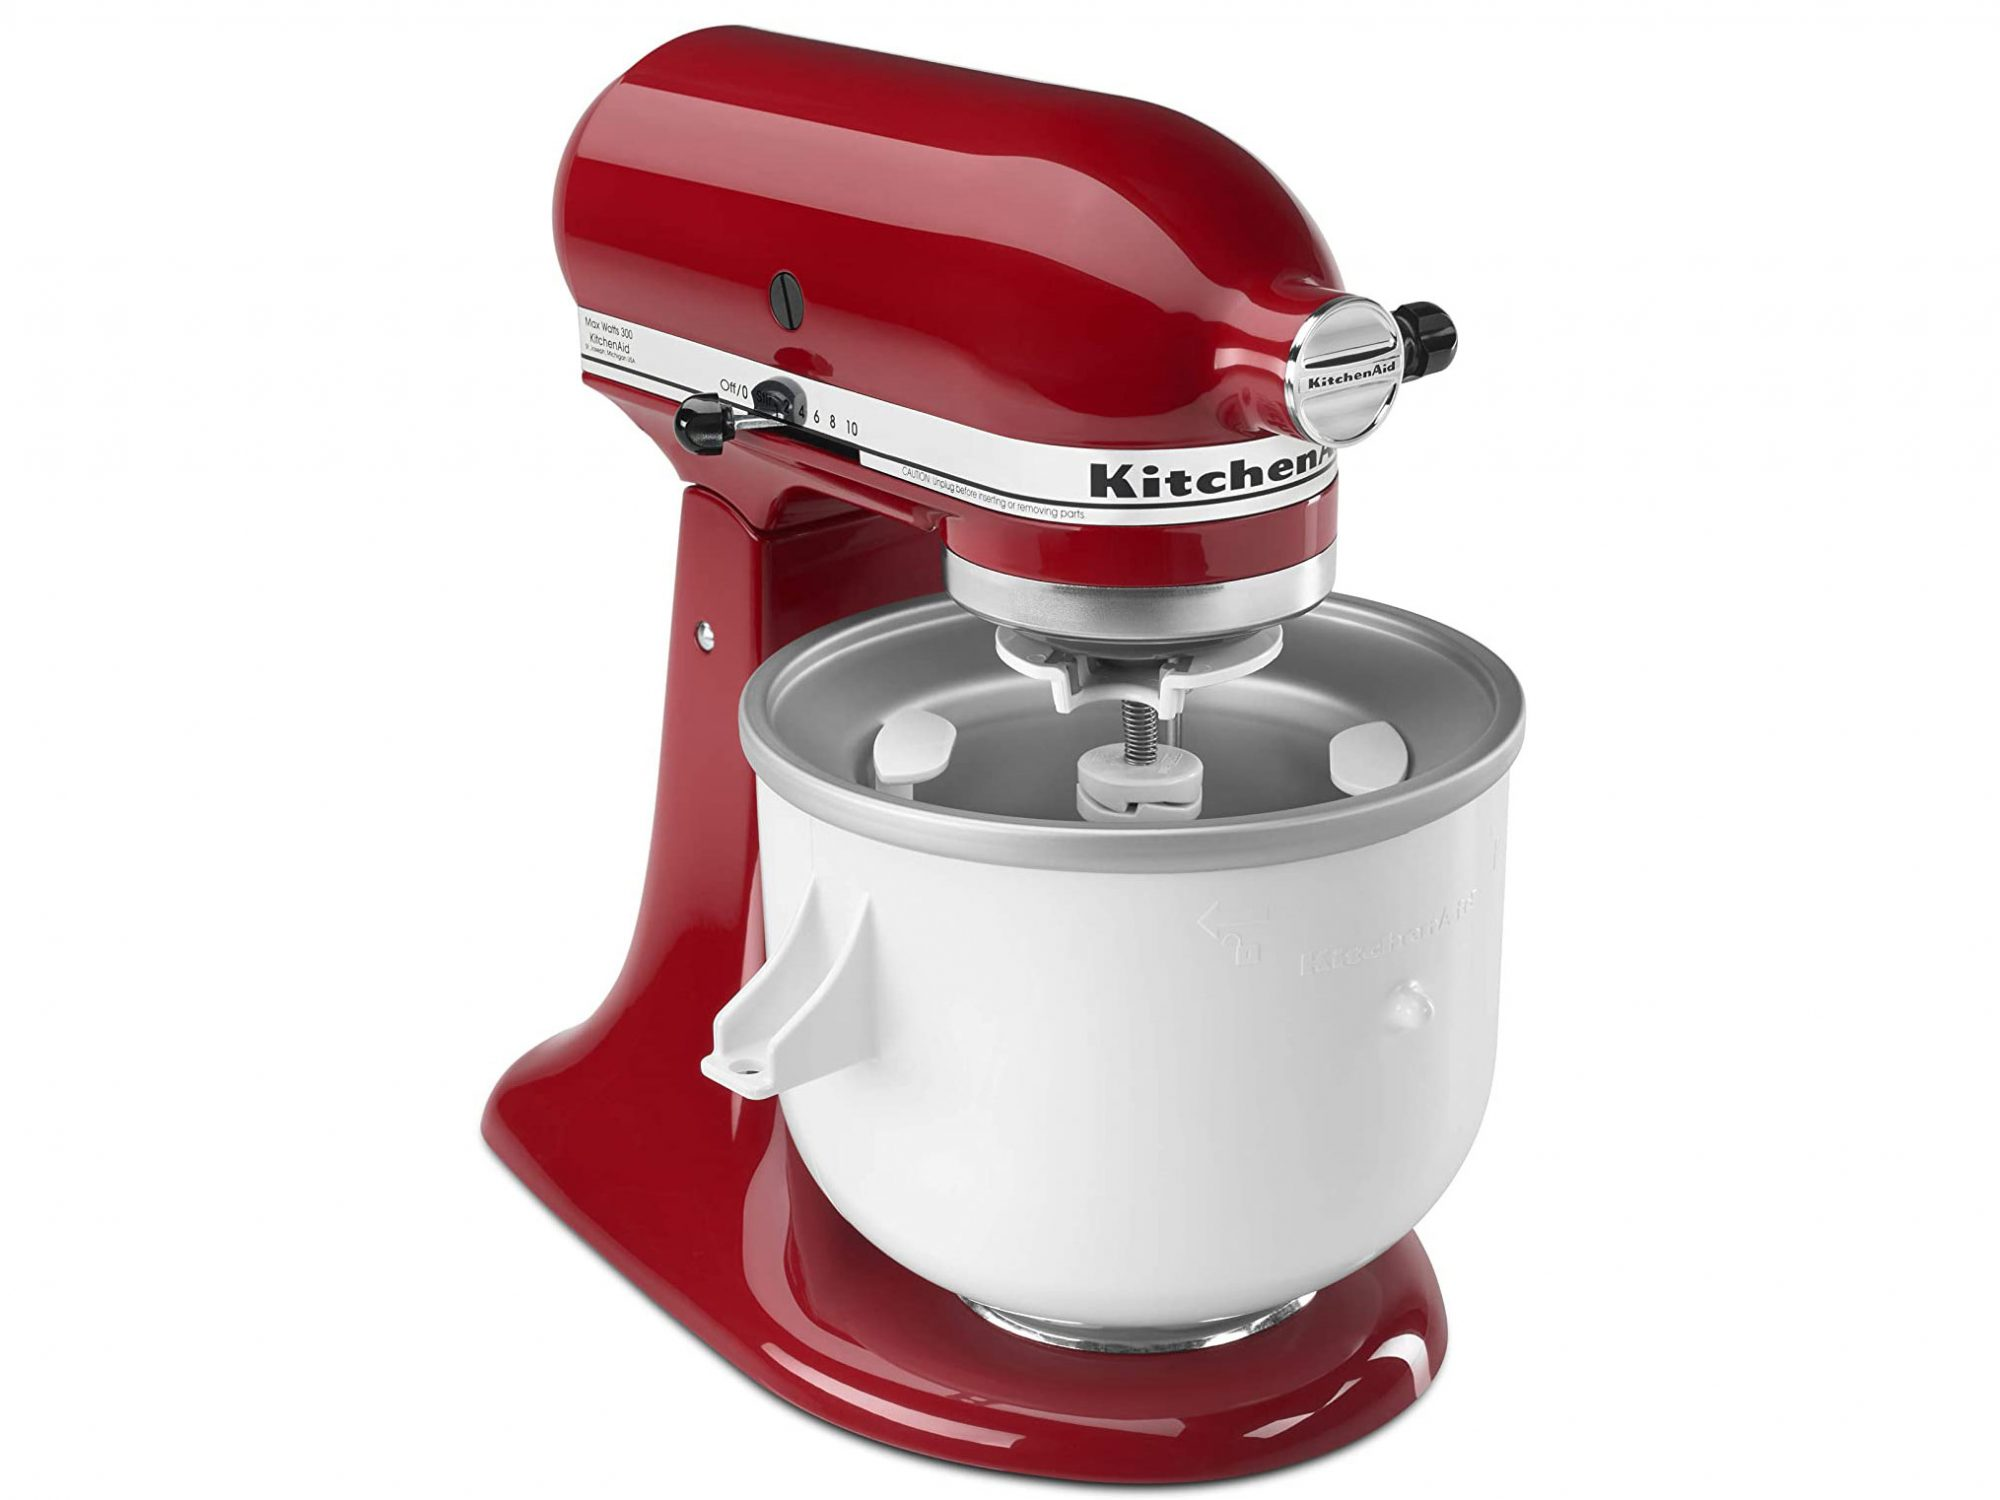 Ways to Use Ice Cream Maker: KitchenAid KICA0WH 2 Quart Ice Cream Maker Stand Mixer Attachment